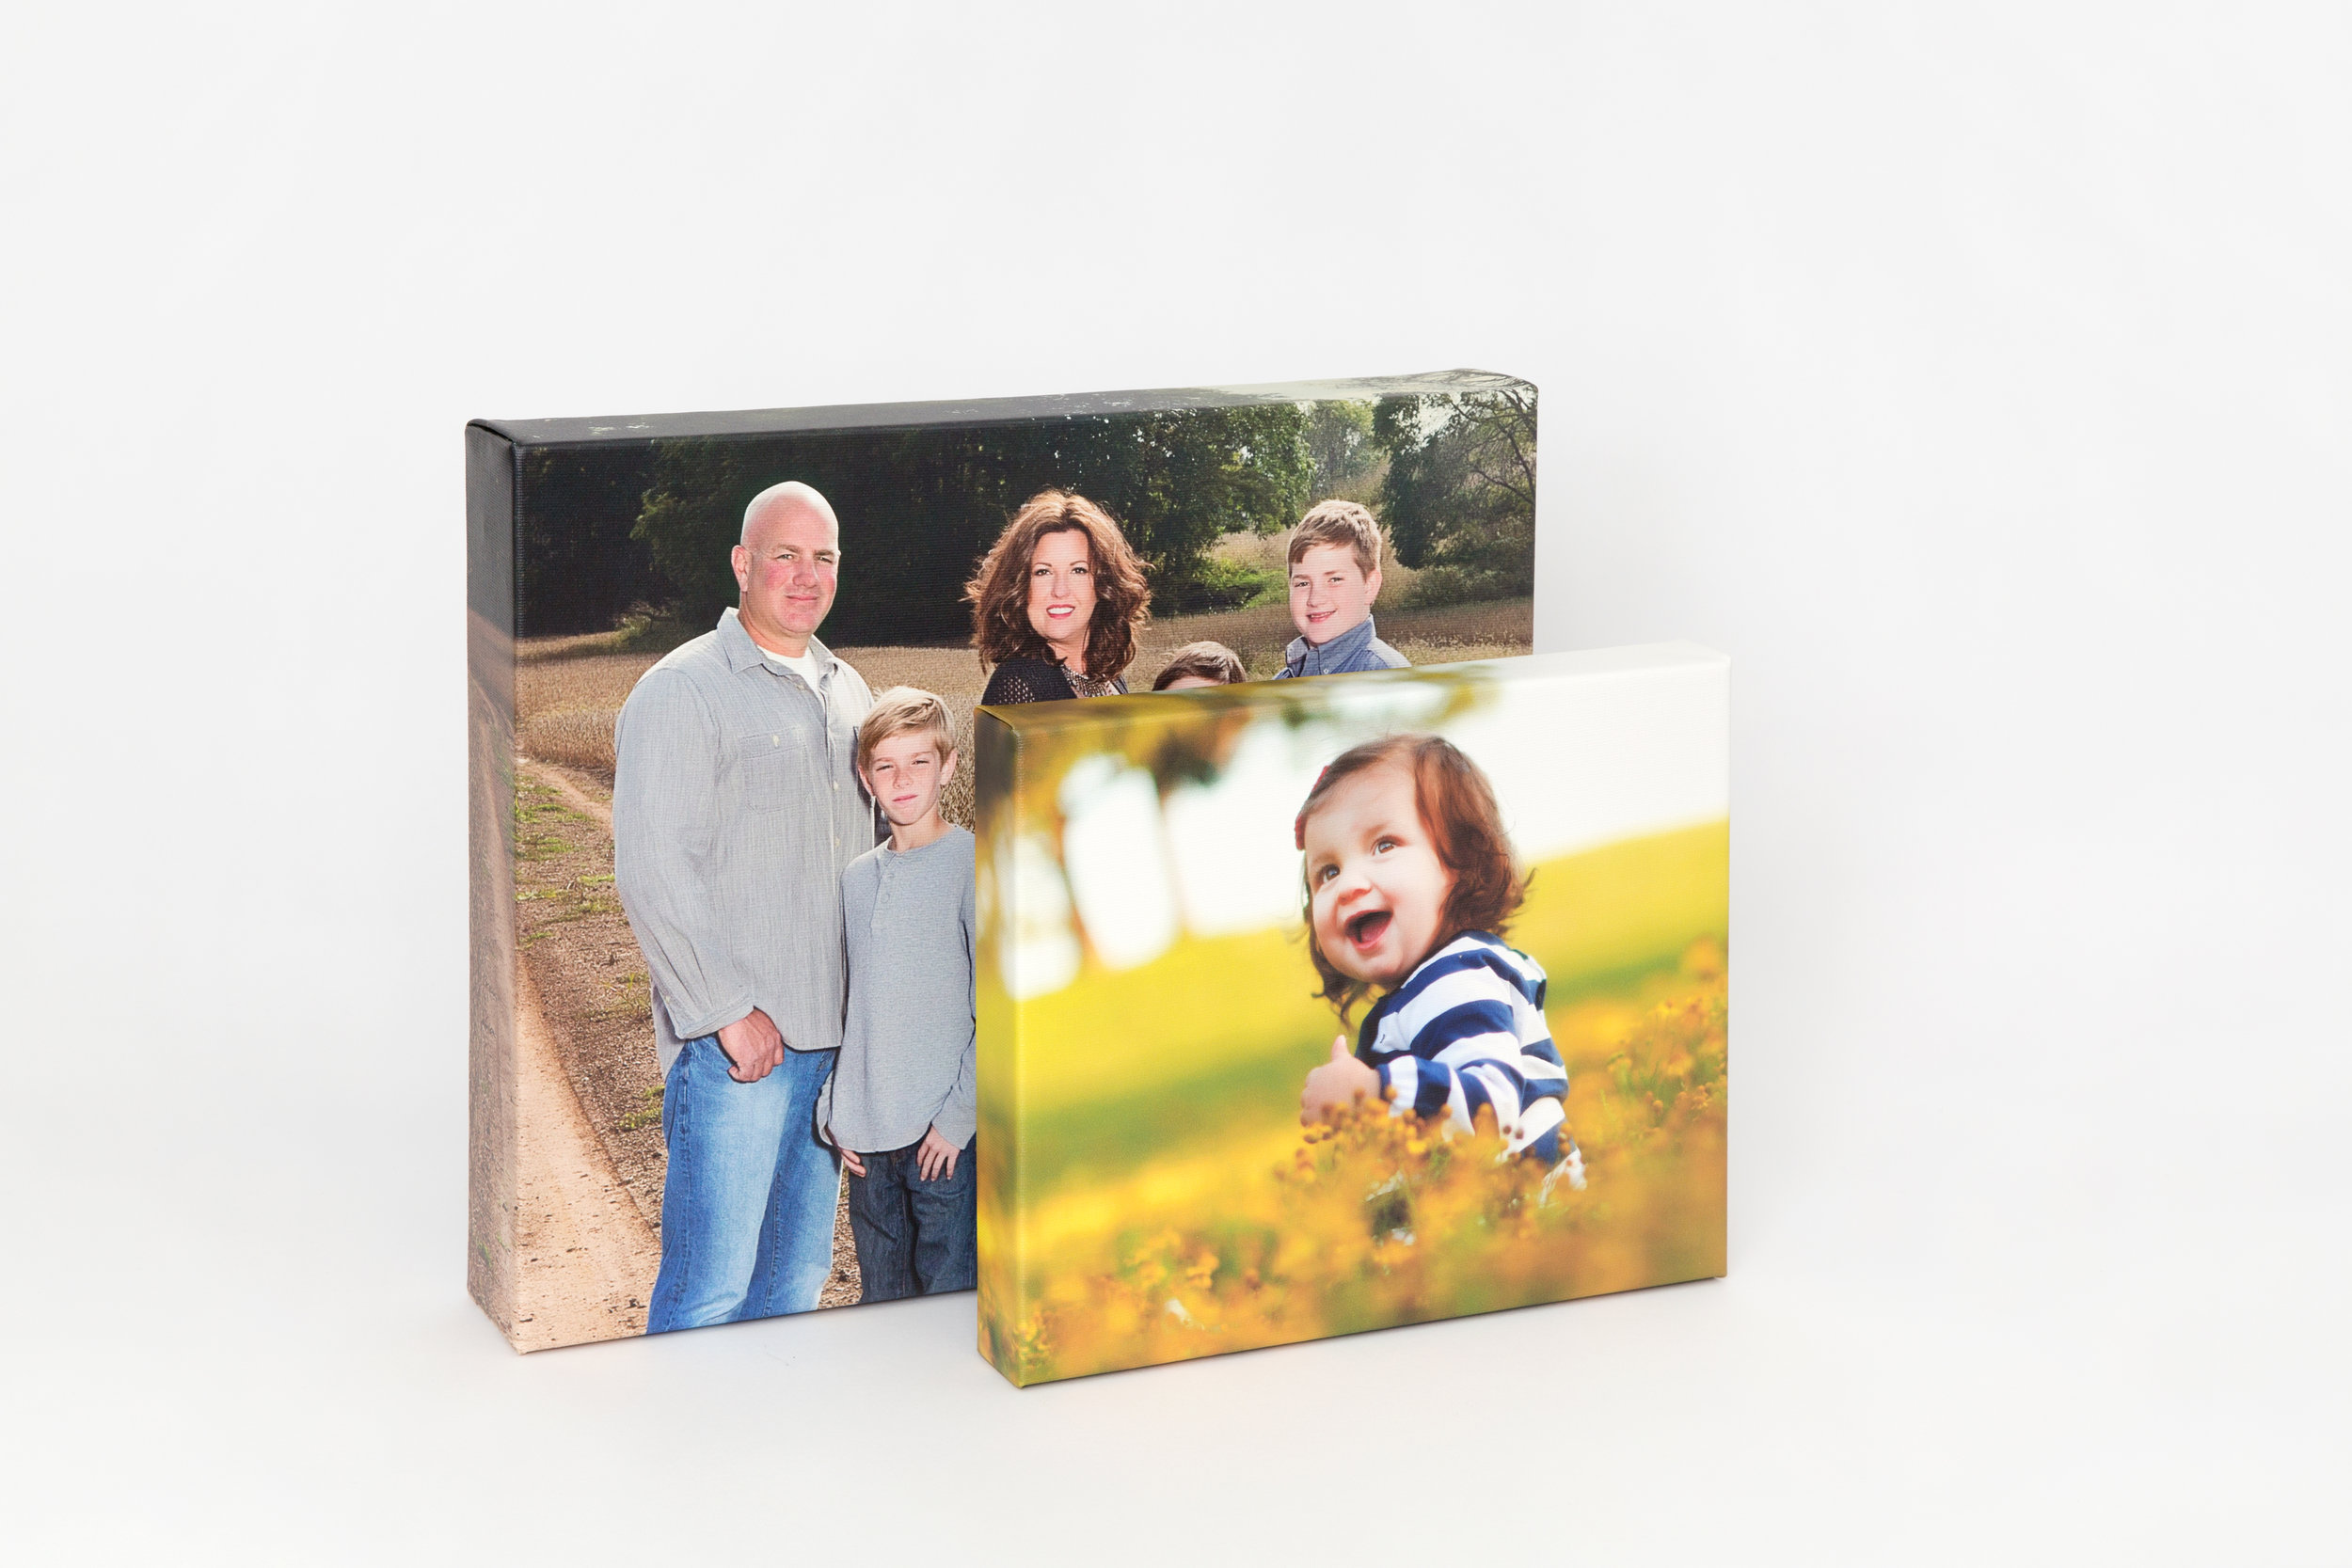 High Quality Canvas - Canvas that will meet your needsGallery Wraps are printed on premium canvas and wrapped around a stretcher bar. With museum-like quality, you'll love your very own original masterpiece.